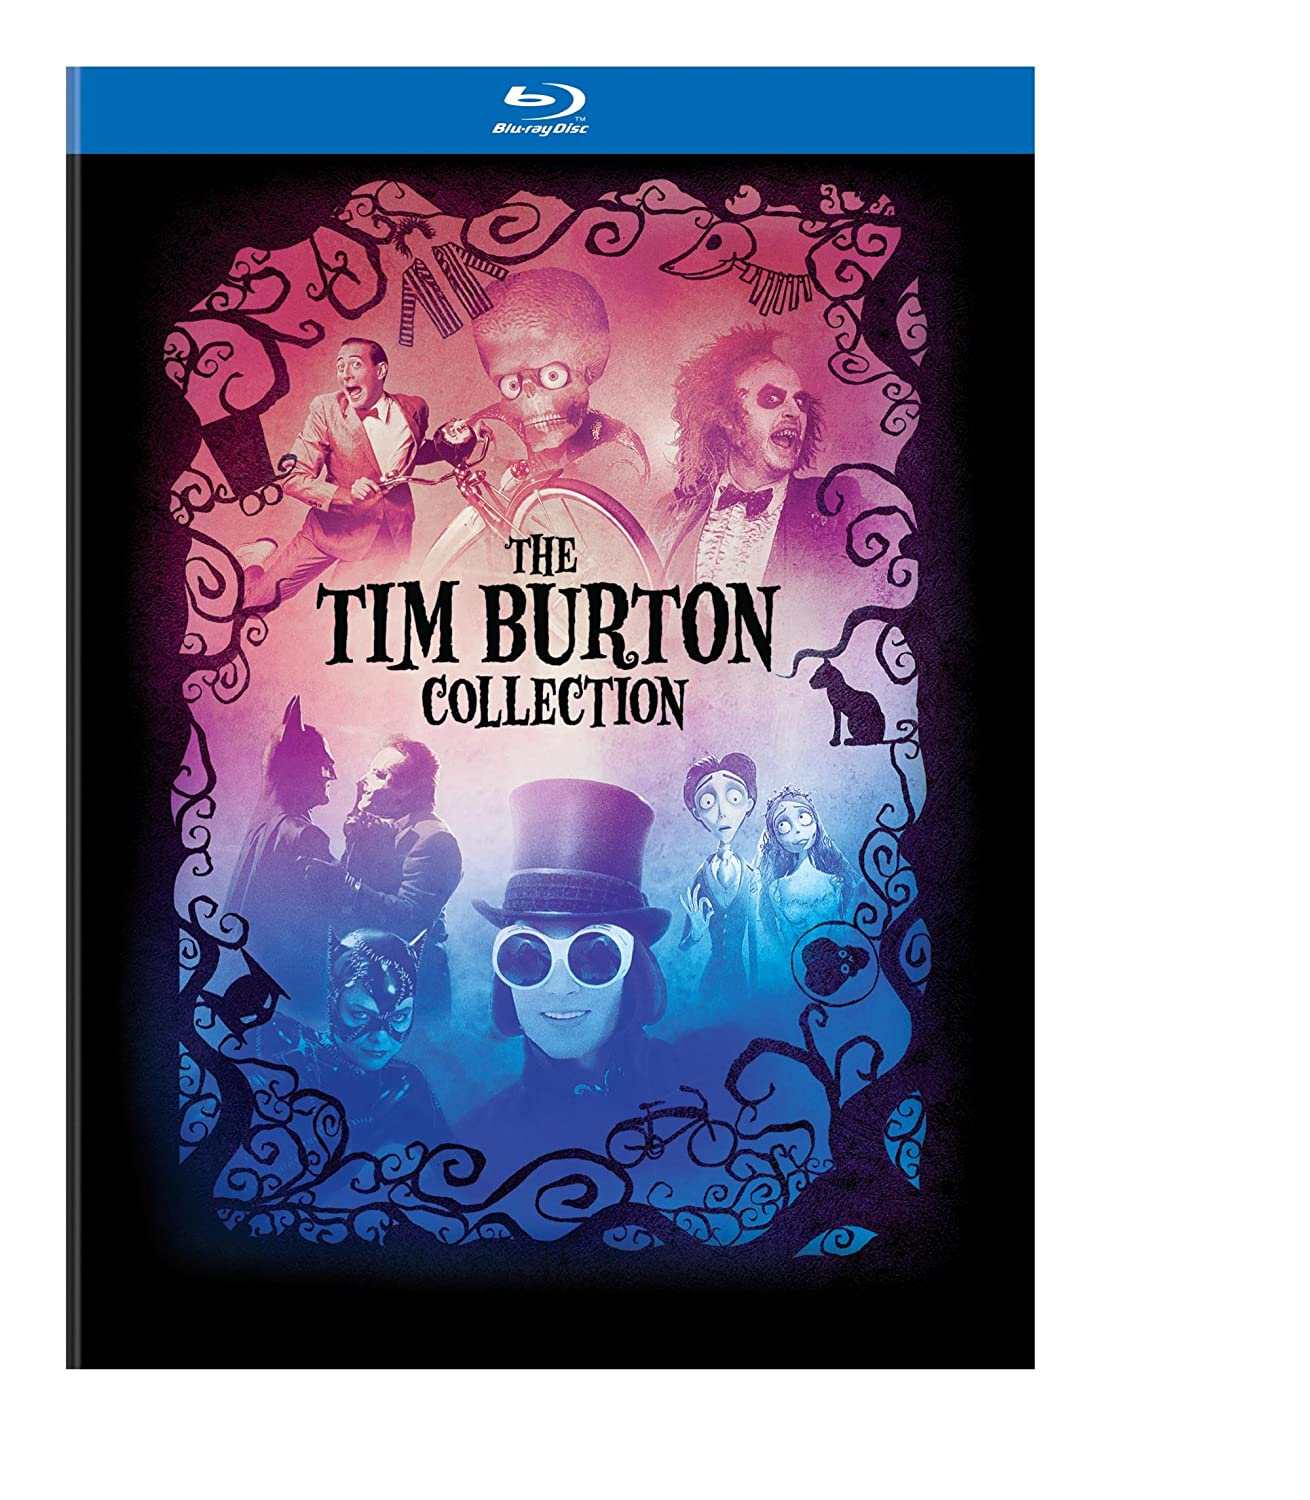 The Tim Burton Collection + Book [Blu-ray] $25.99